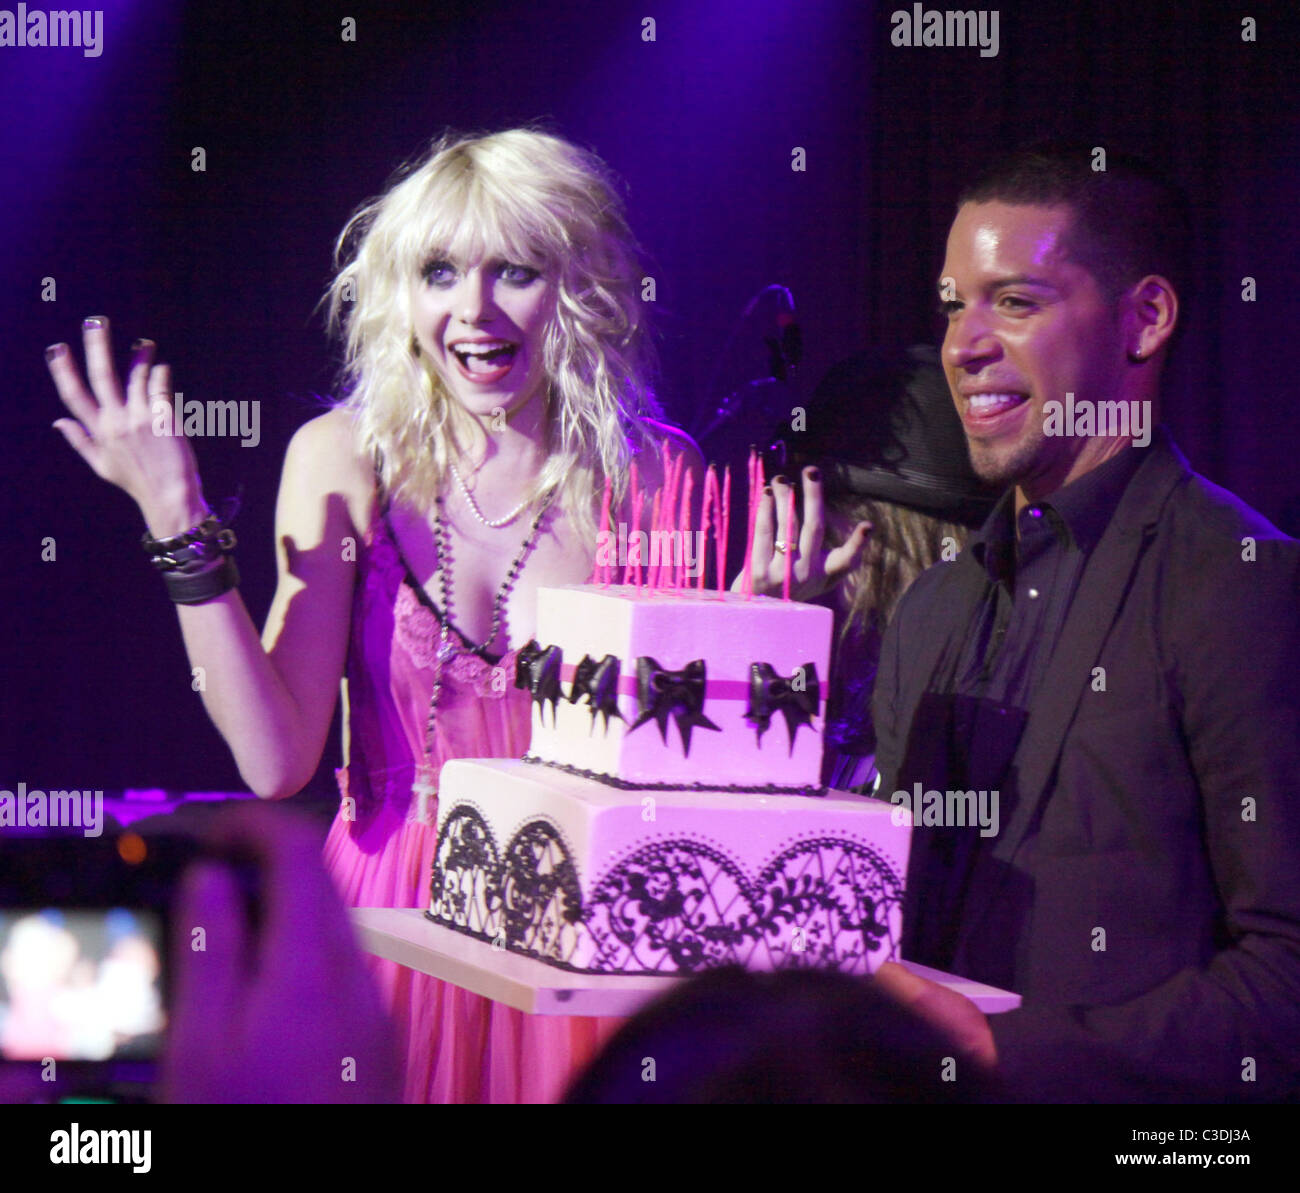 Taylor Momsen Blows Out Candles For Her 16th Birthday At Hiro Ballroom New York City USA